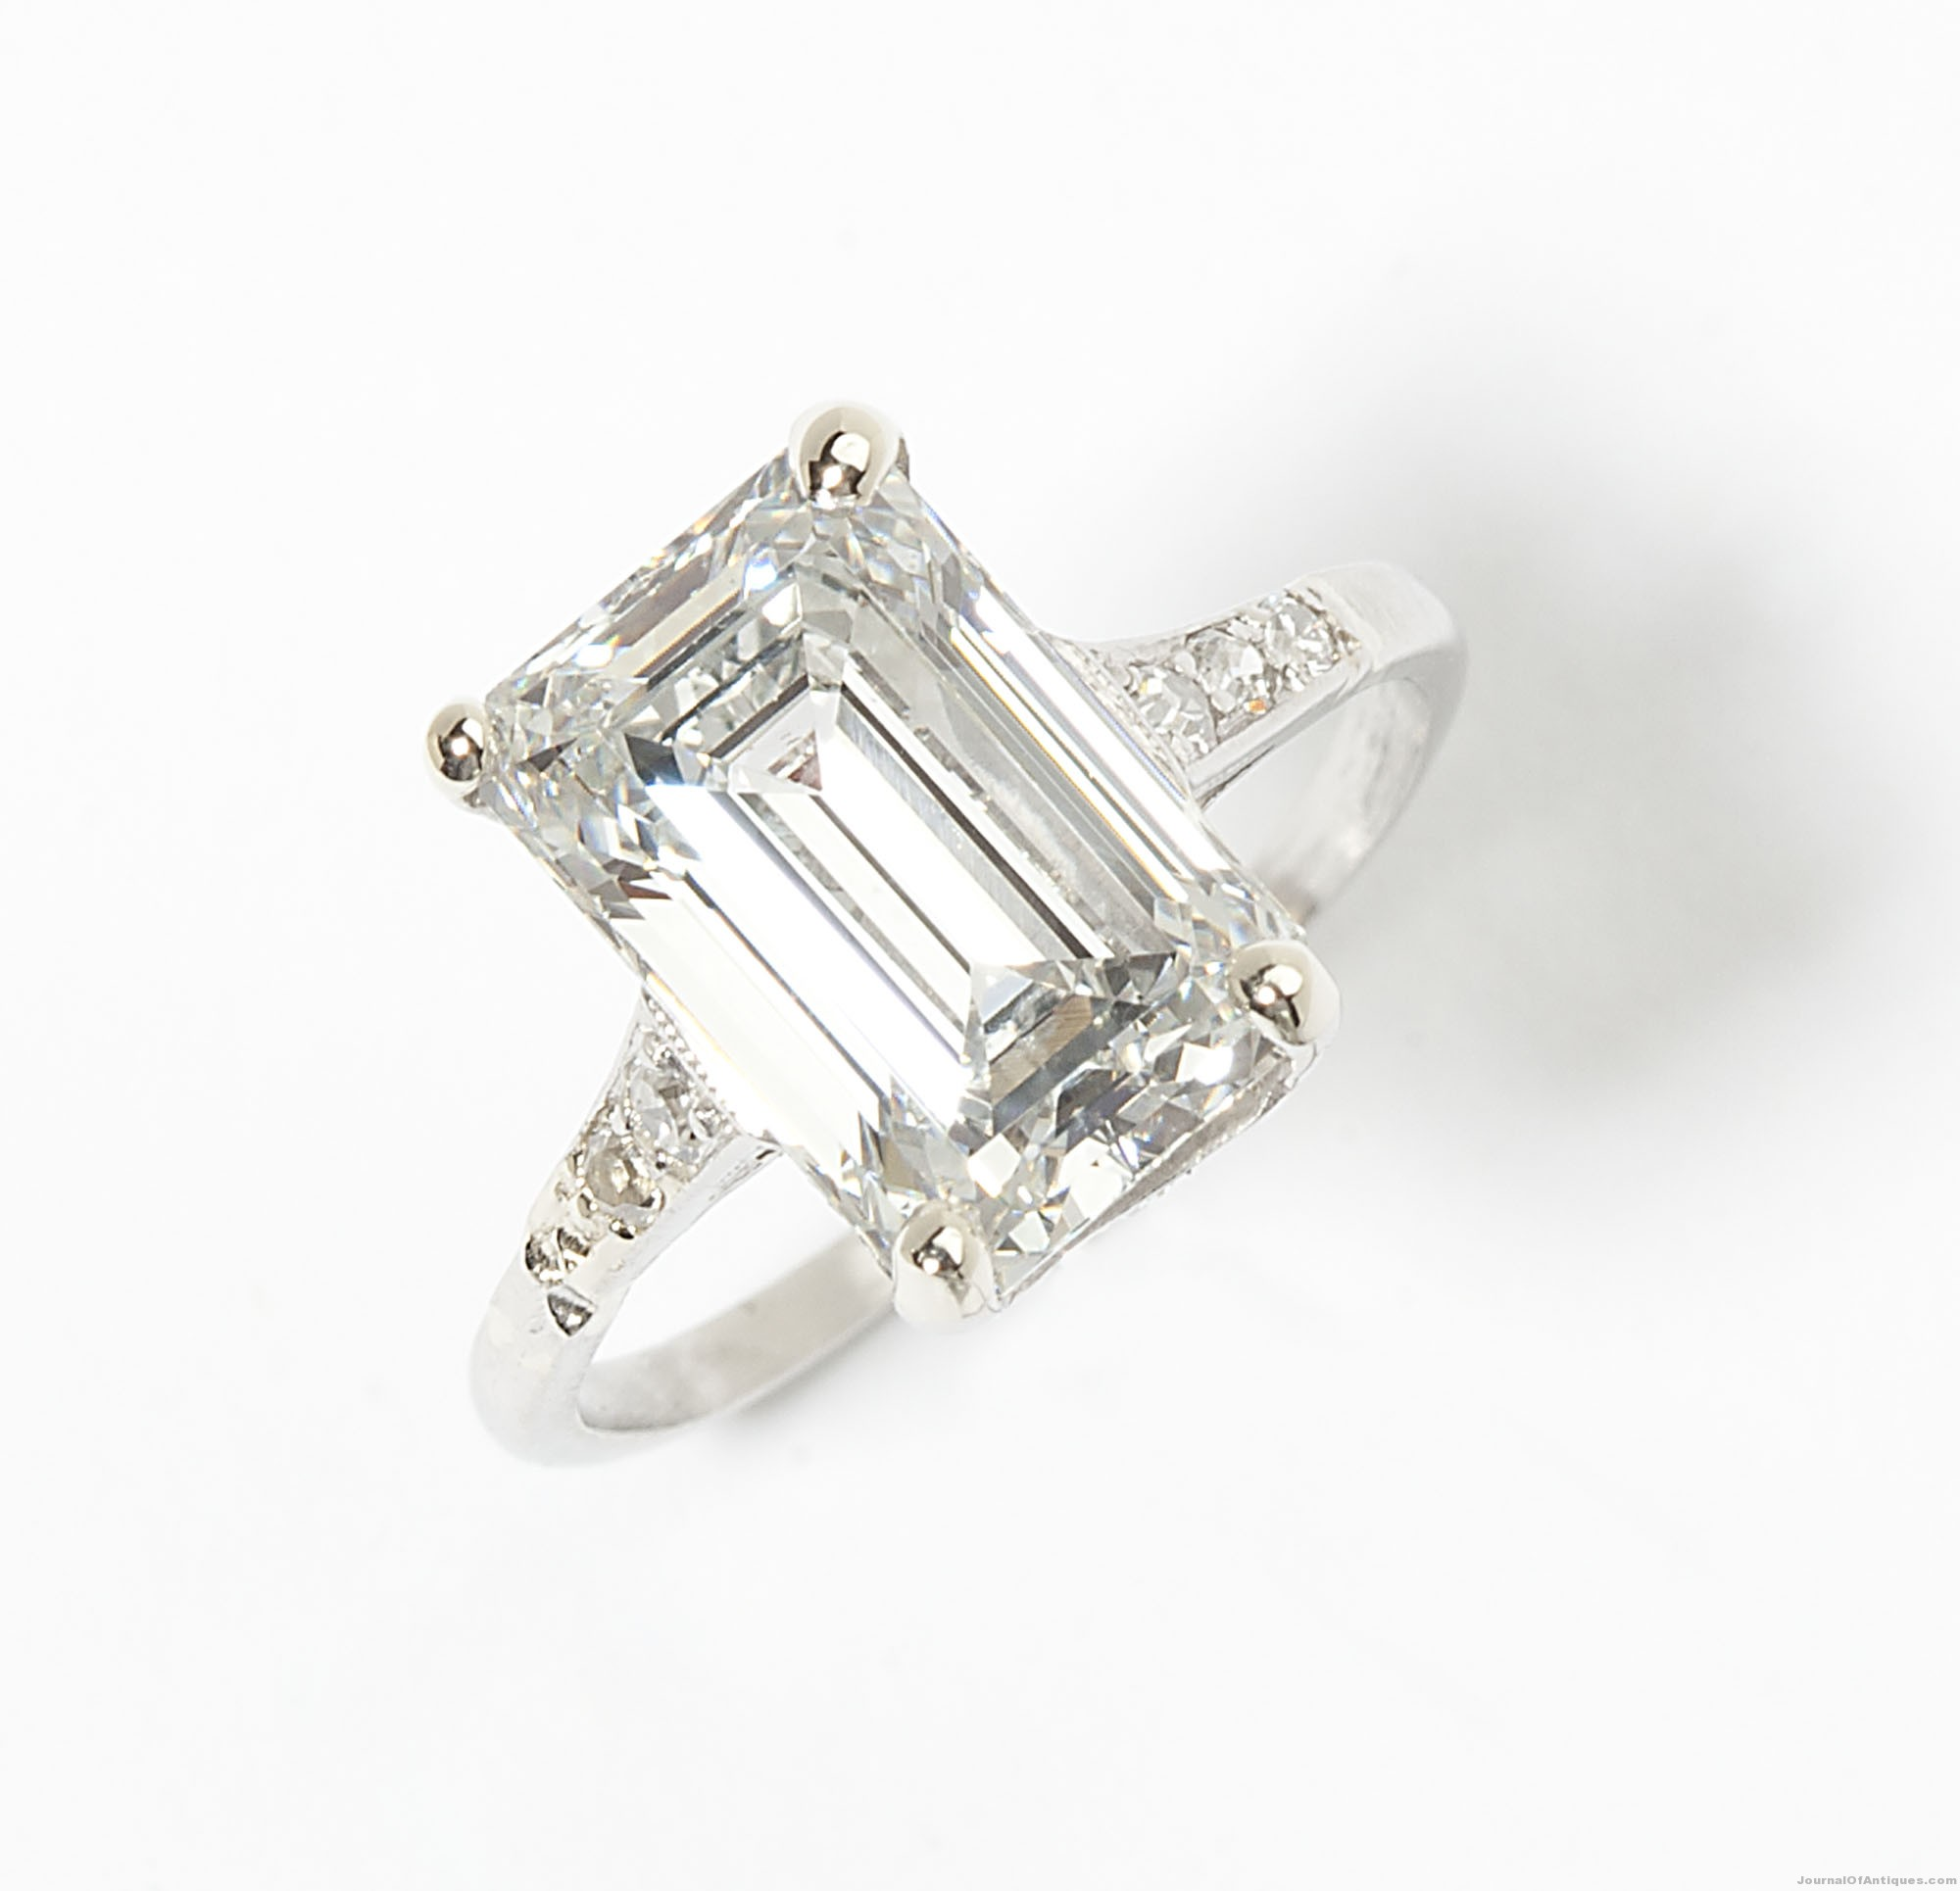 3.23-carat diamond ring, $33,600, John Moran